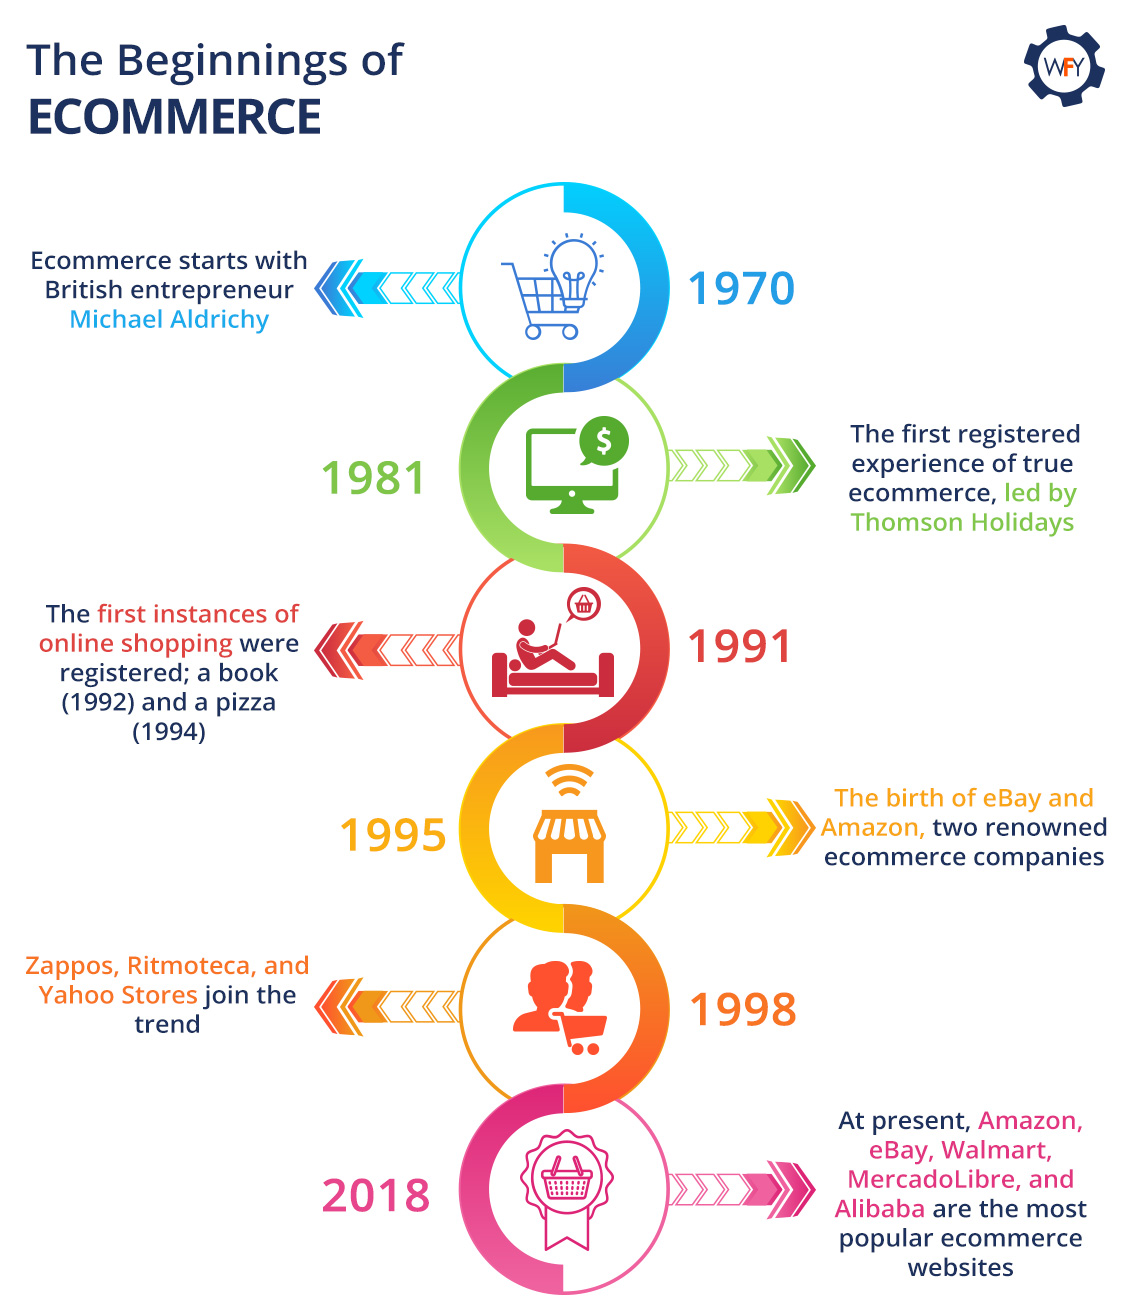 The Beginnings of Ecommerce